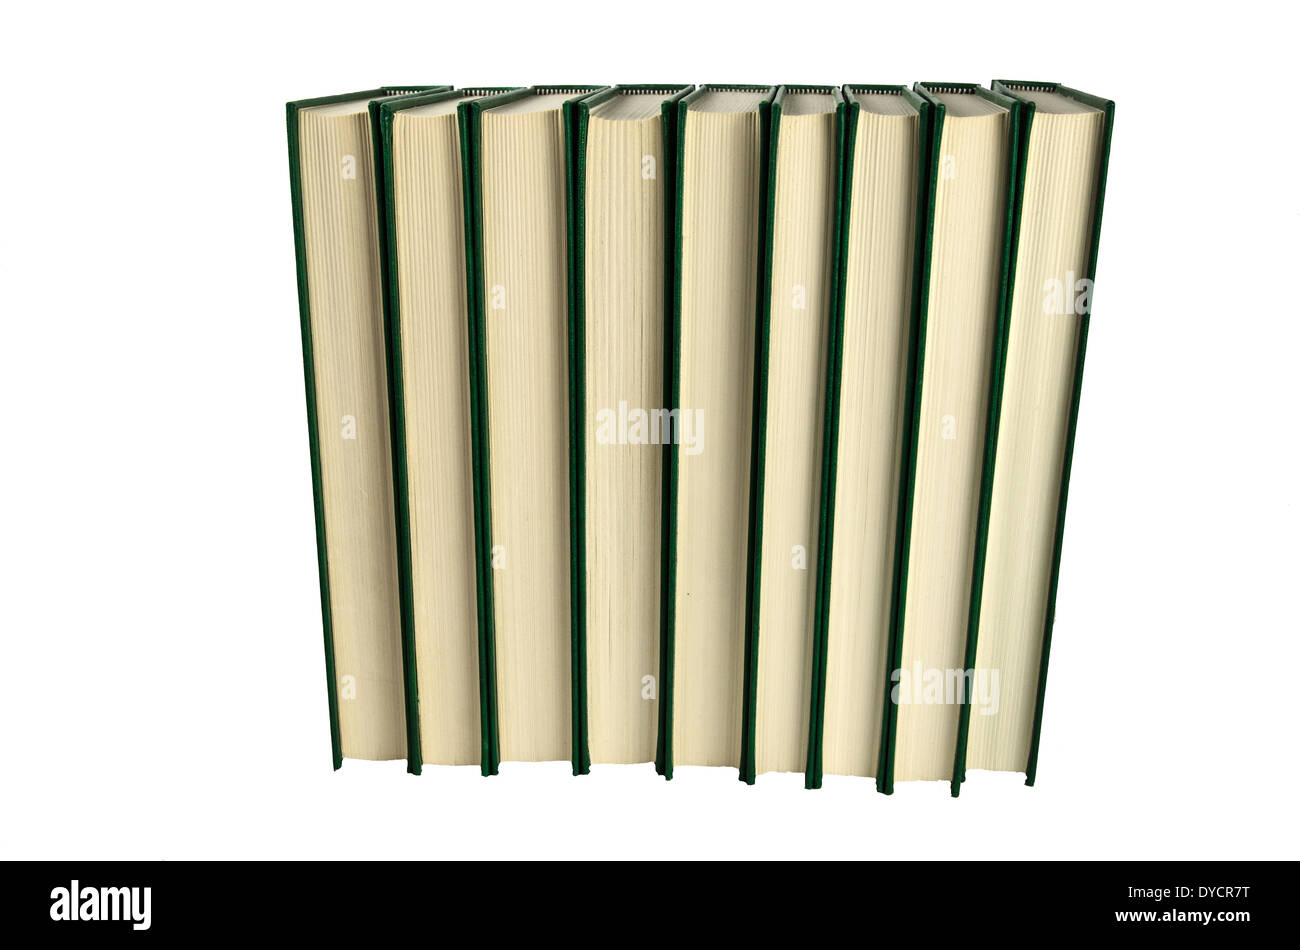 Books standing in a row at white background - Stock Image